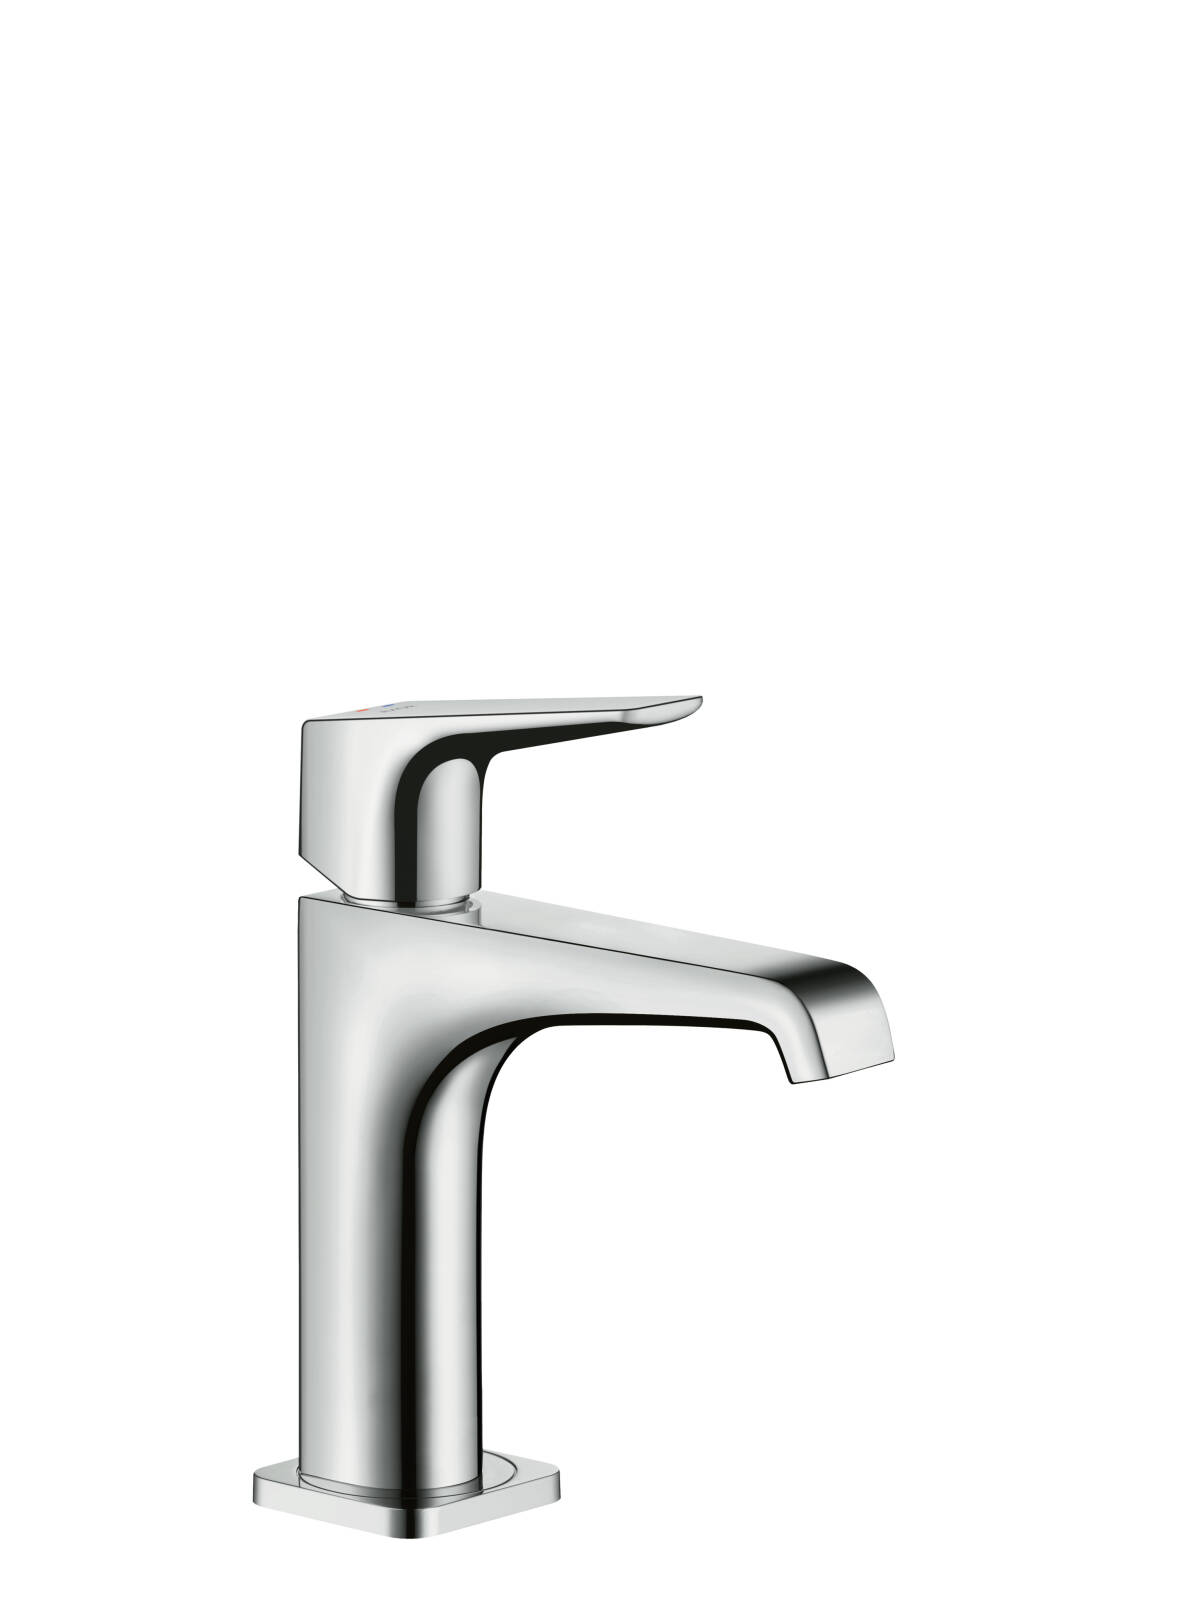 Single lever basin mixer 130 with lever handle and waste set, Chrome, 36111001